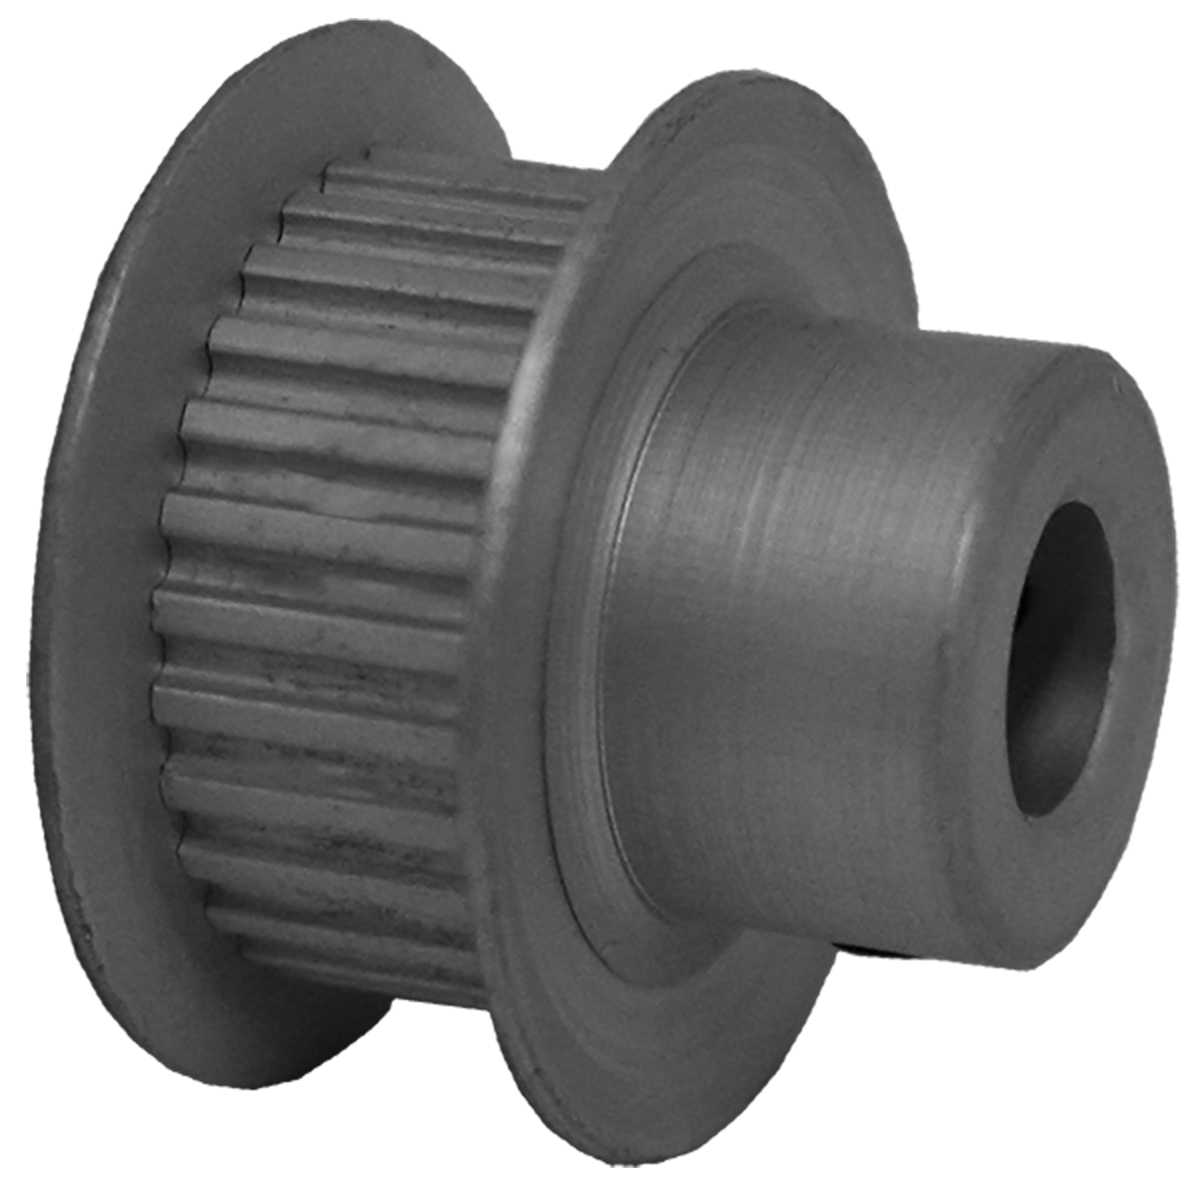 28MP025-6FA3 - Aluminum Imperial Pitch Pulleys